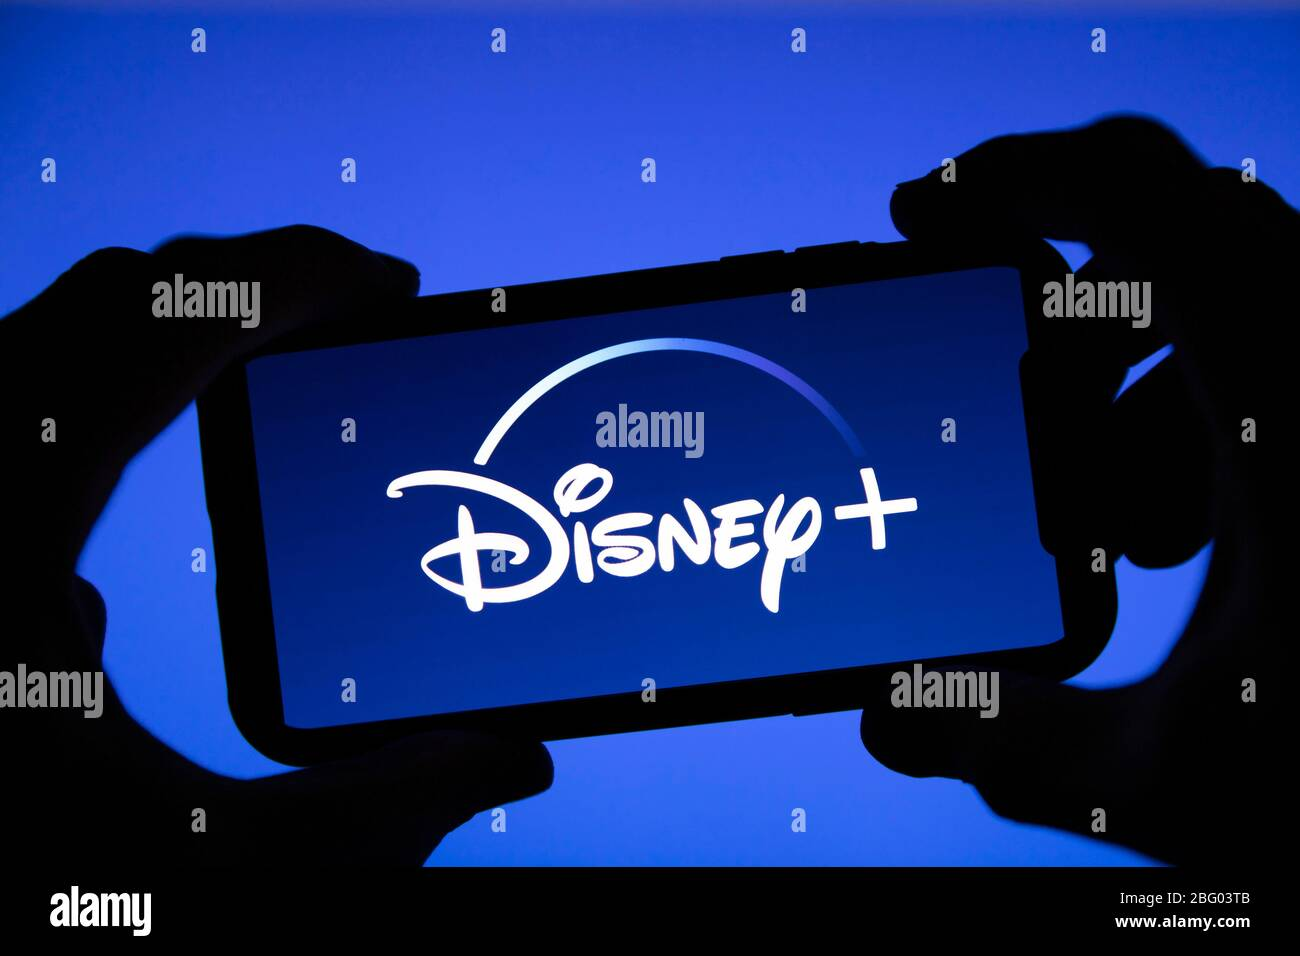 Disney Plus Logo High Resolution Stock Photography And Images Alamy Facebook is showing information to help you better understand the purpose of a page. https www alamy com london uk april 17 2020 disney plus streaming service logo on a smartphone image354044891 html